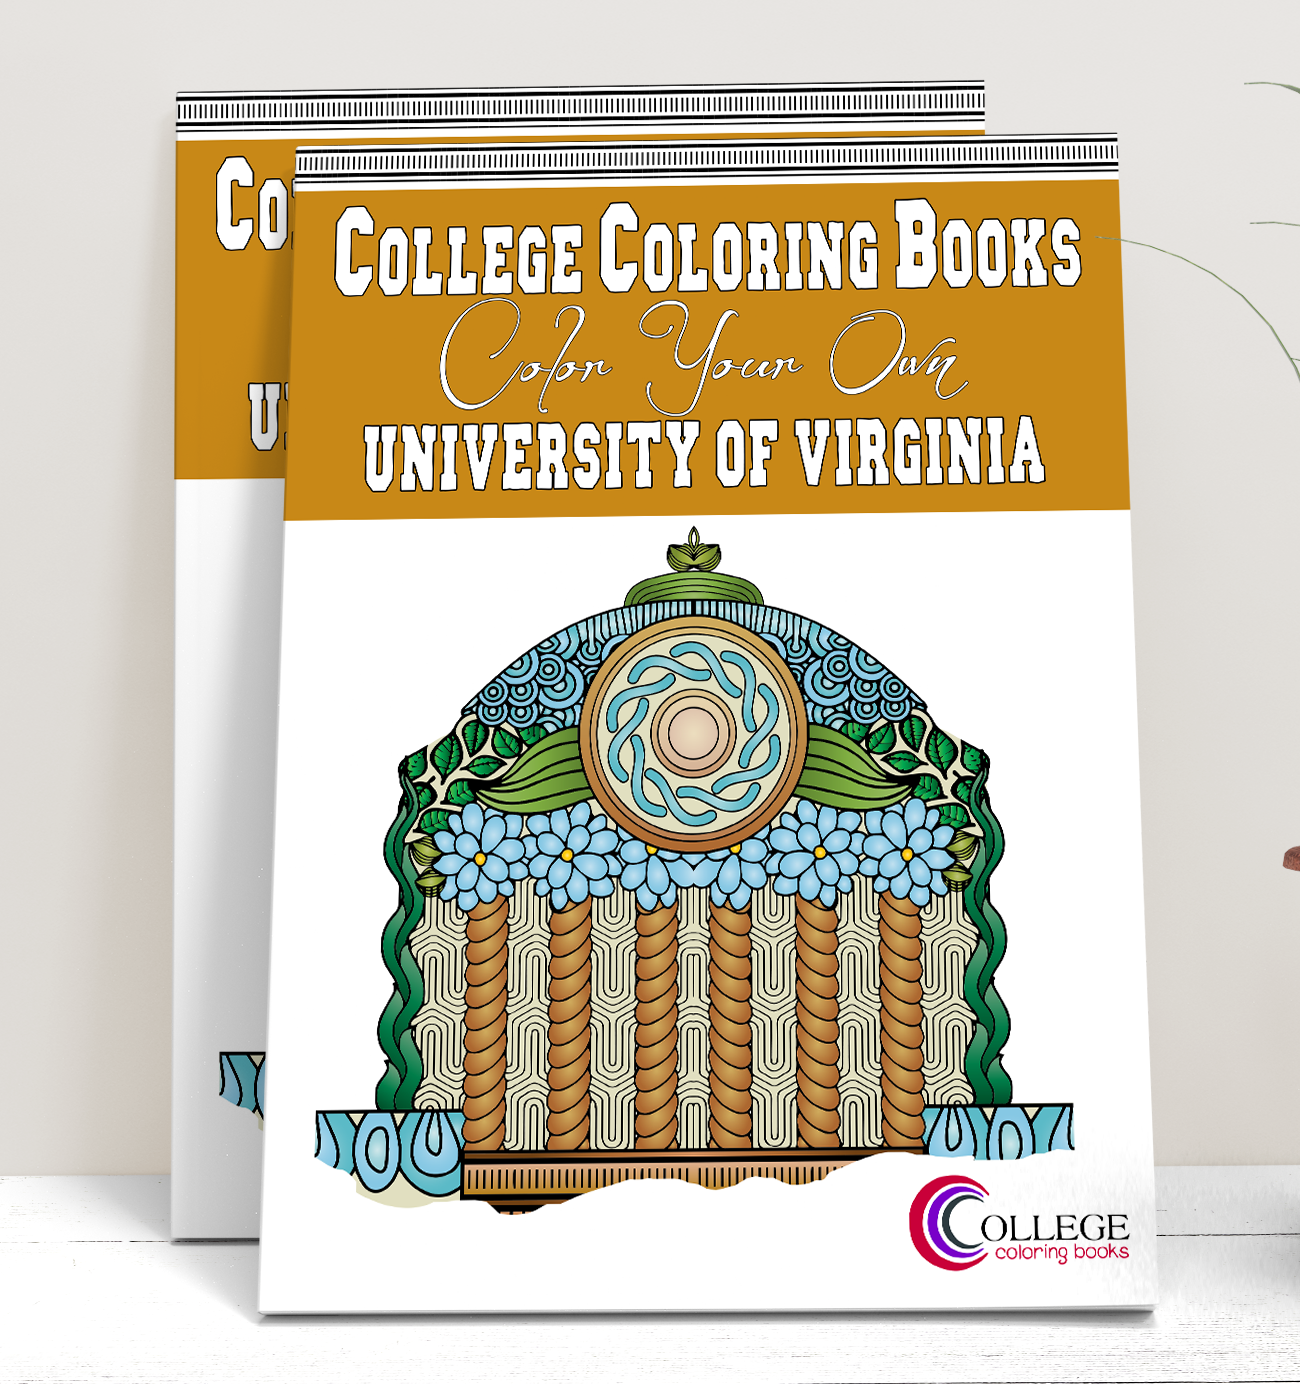 College Coloring Books UVA